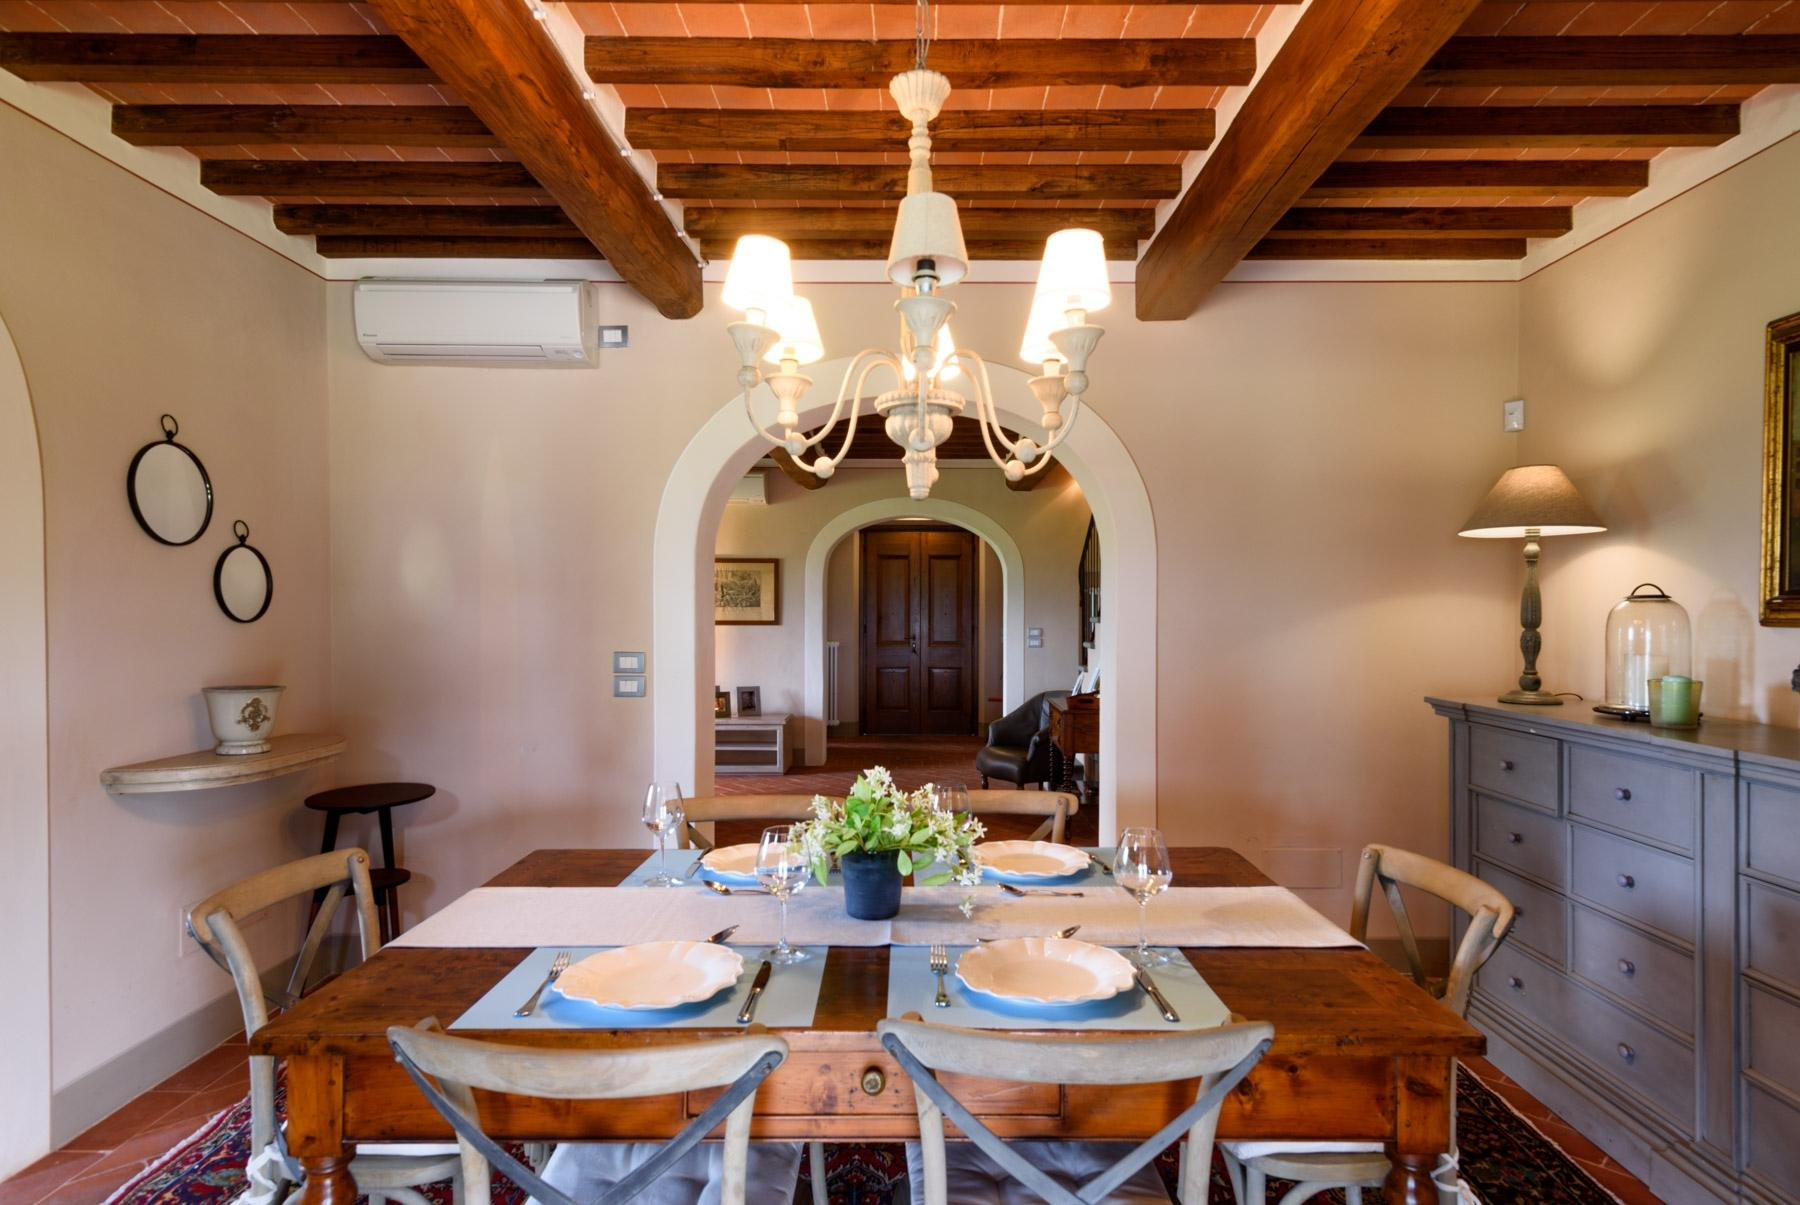 Marvelous hunting lodge in tuscan countryside - 4